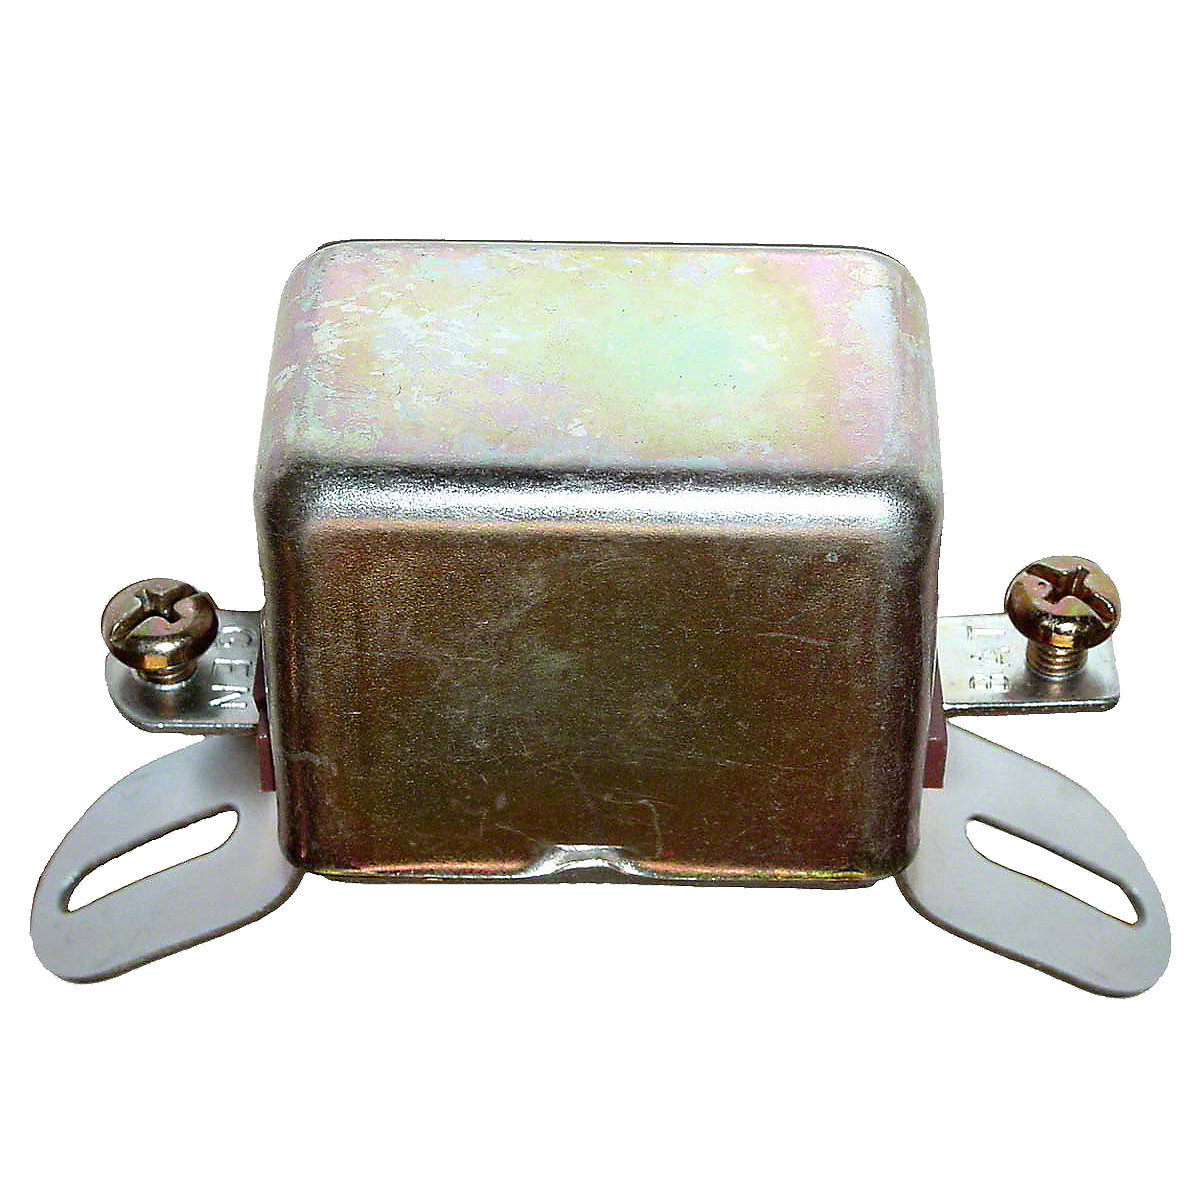 6 Volt Generator Cut Out Relay For Allis Chalmers: B, C, CA, IB, IU, M, RC, U, UC, WC, WD, WD45, WF.